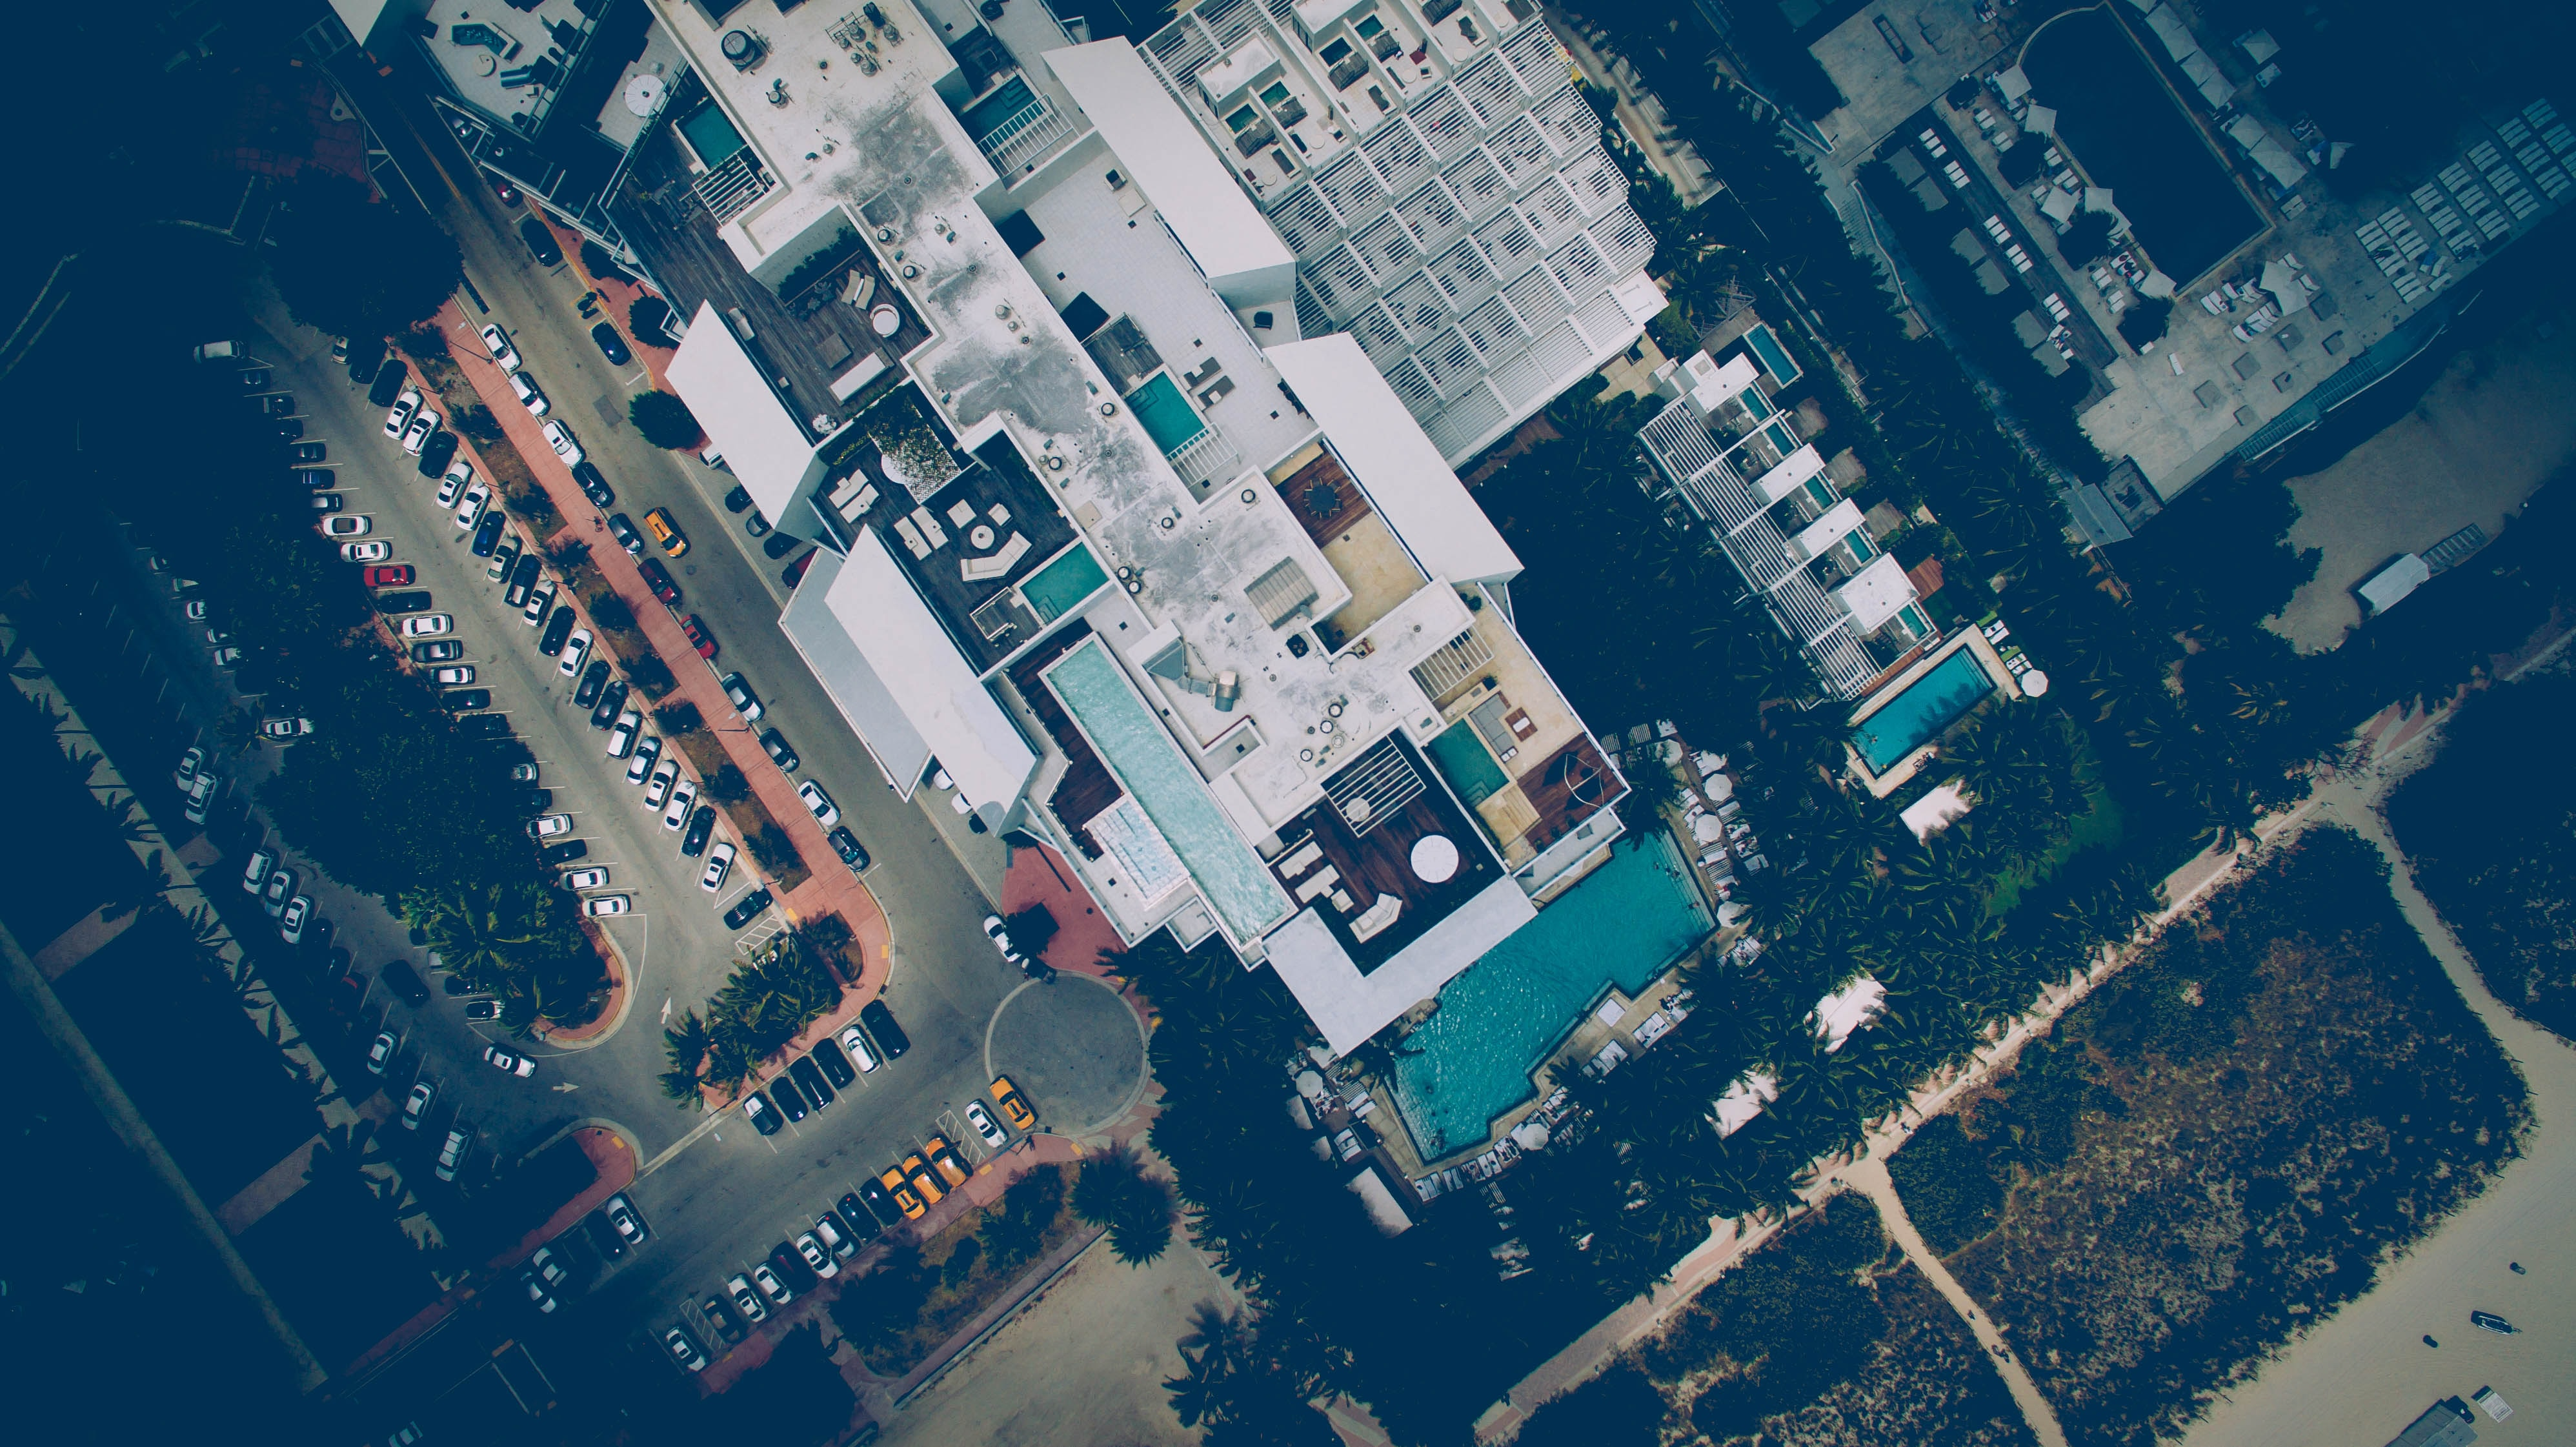 Drone aerial view on a hotel terraces with rooftop pools in Miami Beach